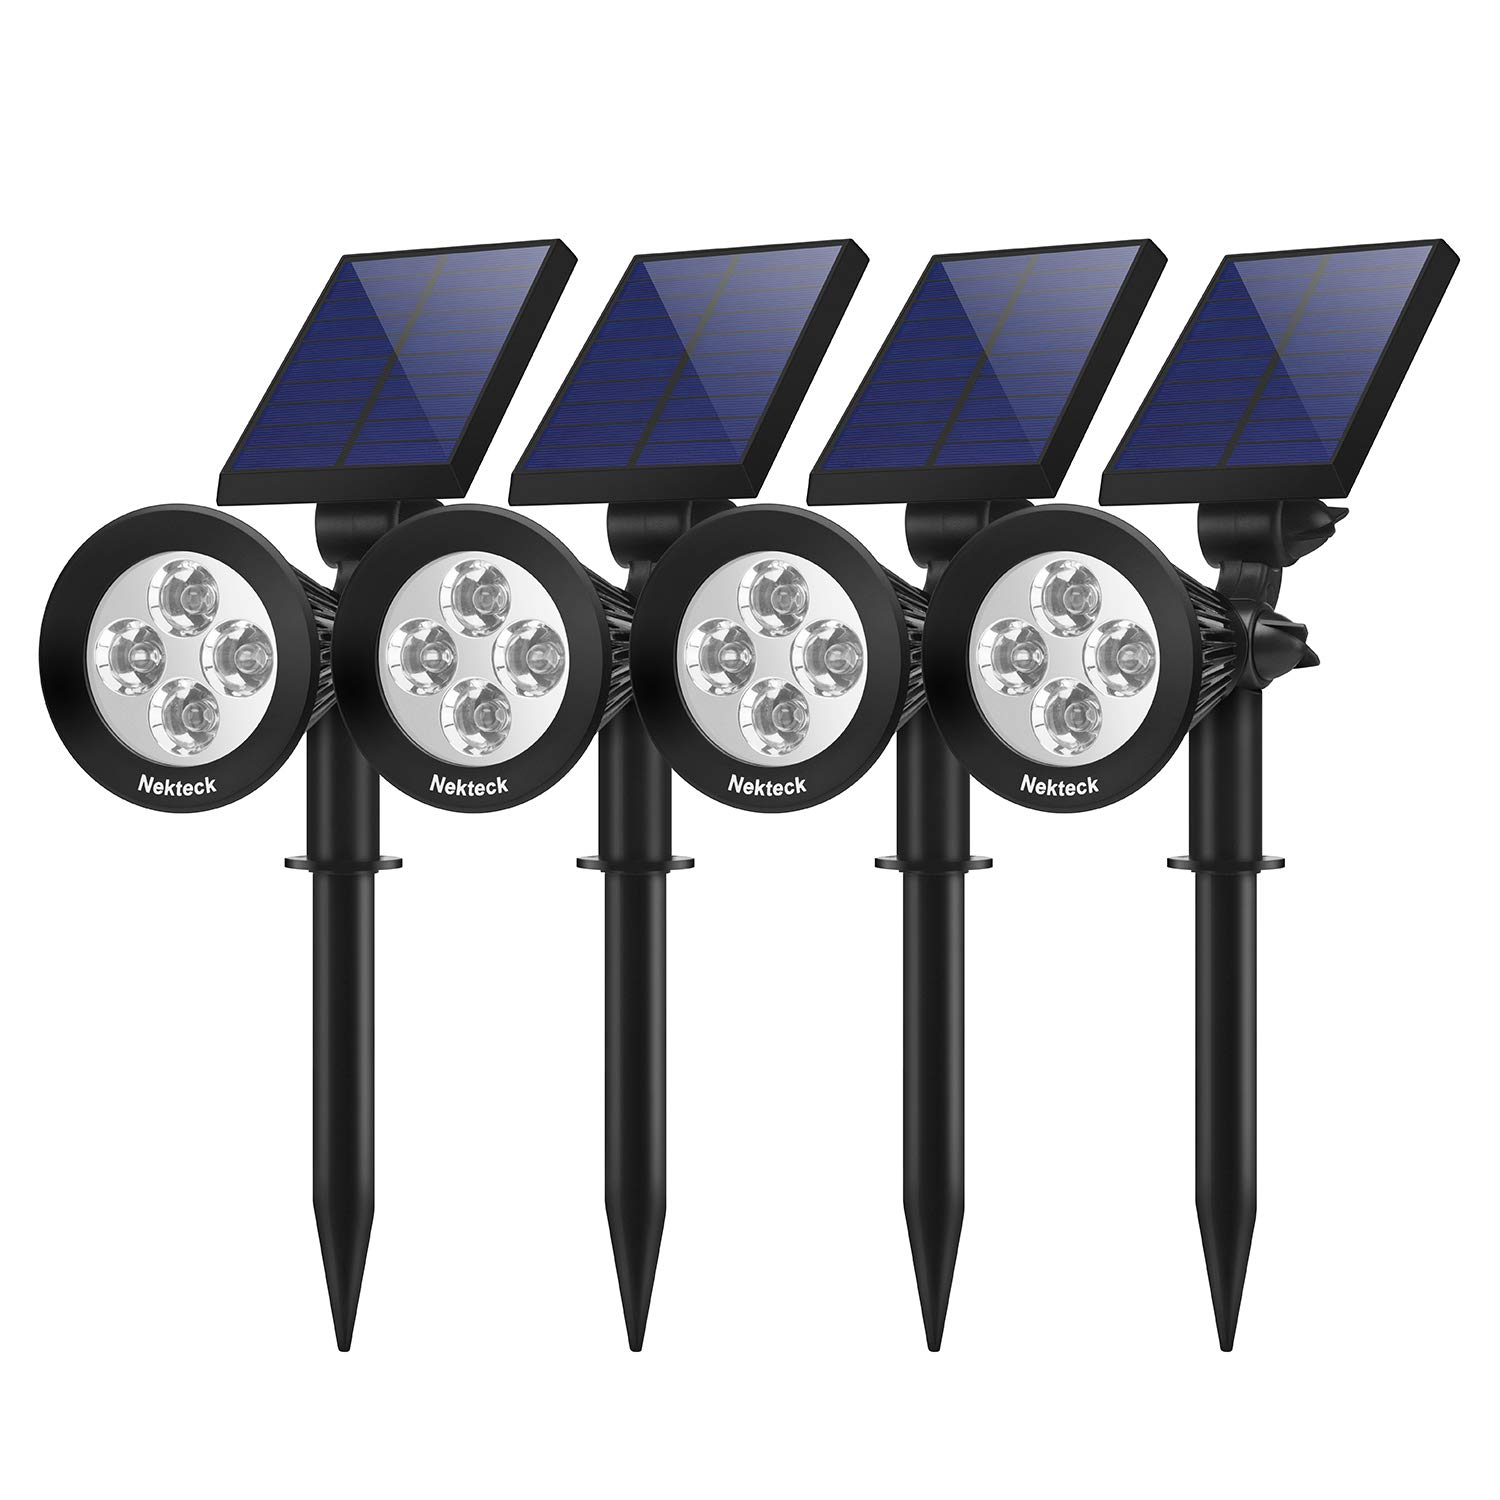 Nekteck Solar Lights Outdoor, 2-in-1 Solar Spotlights Powered 4 LED Adjustable Wall Light Landscape Lighting, Bright and Dark Sensing, Auto On/Off for Yard Garden Pool Driveway Porch Walkway Patio by Nekteck